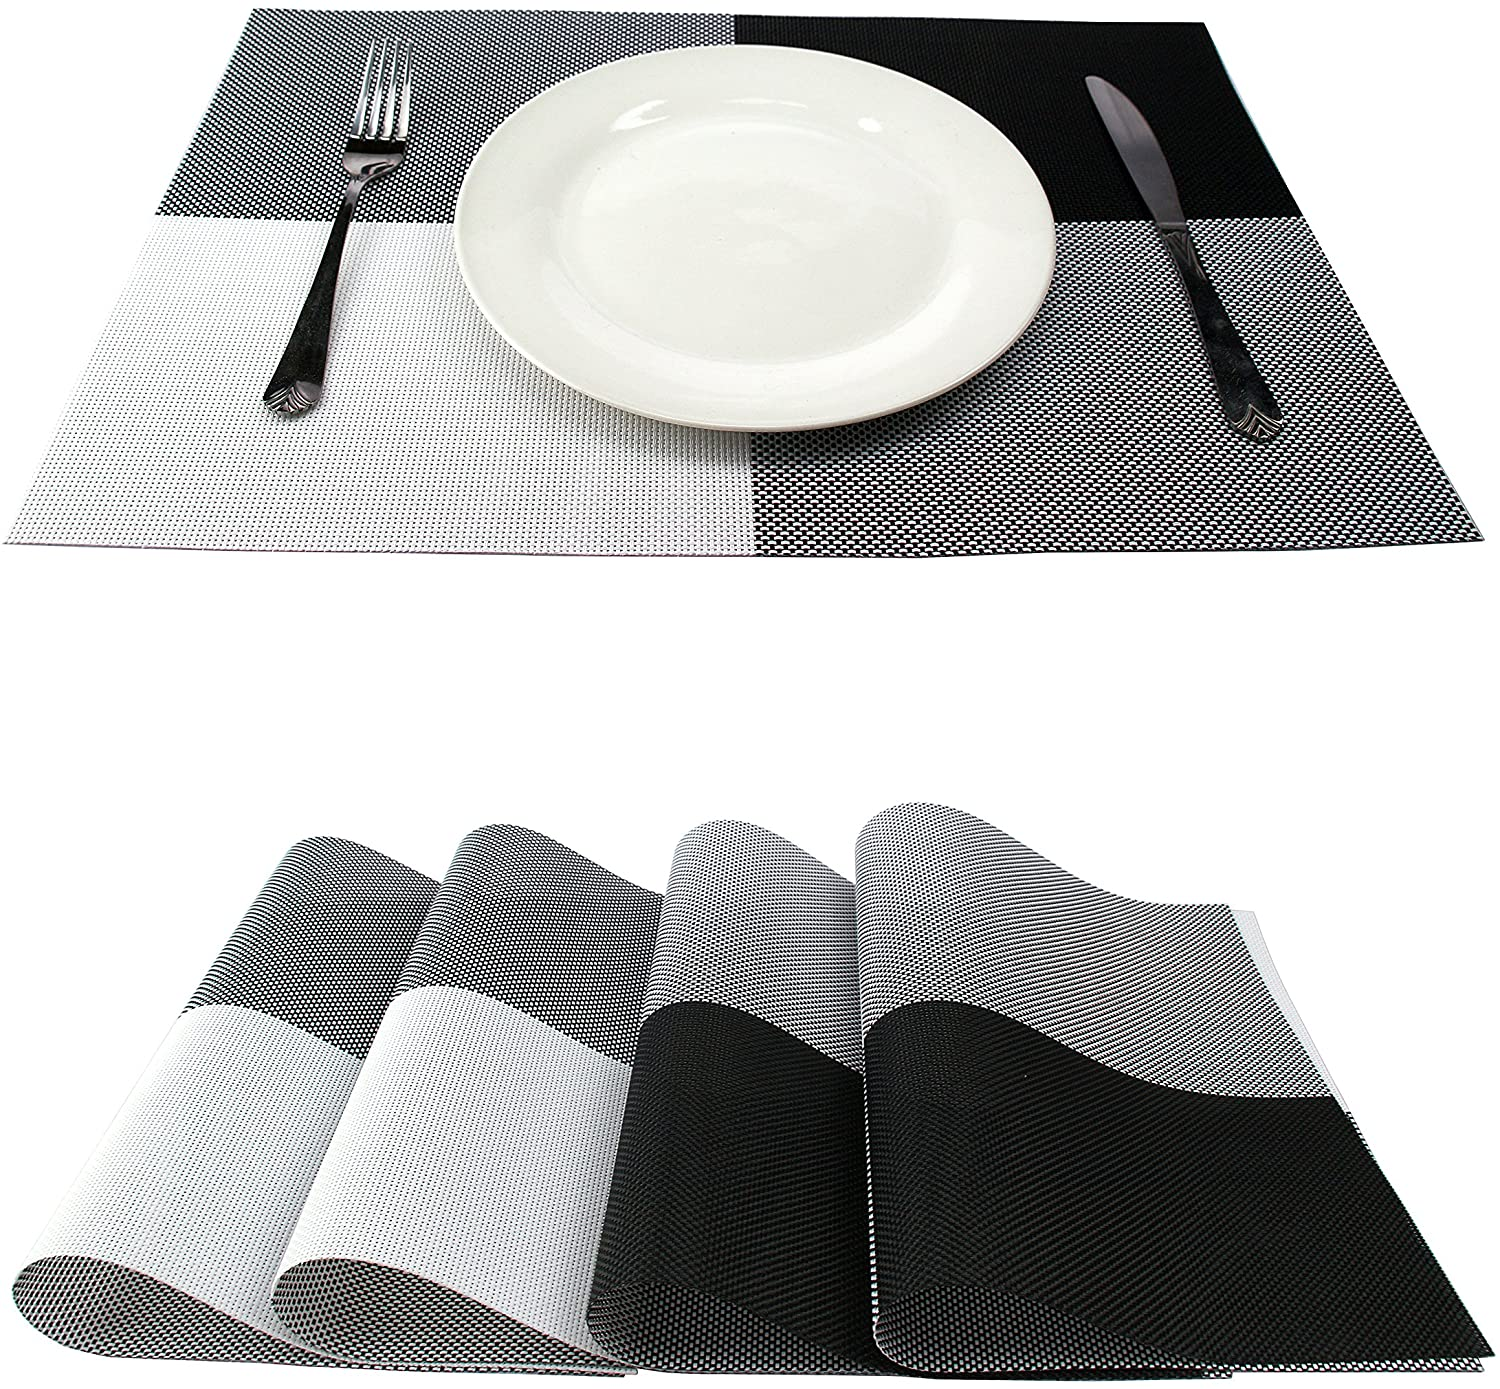 GEFEII PVC Woven Vinyl Non-Slip Heat-Resistant Grid Black and White Placemats Kitchen Dining Party Environmental Table Mats Place Mats Pad Cushion (Black, 4)